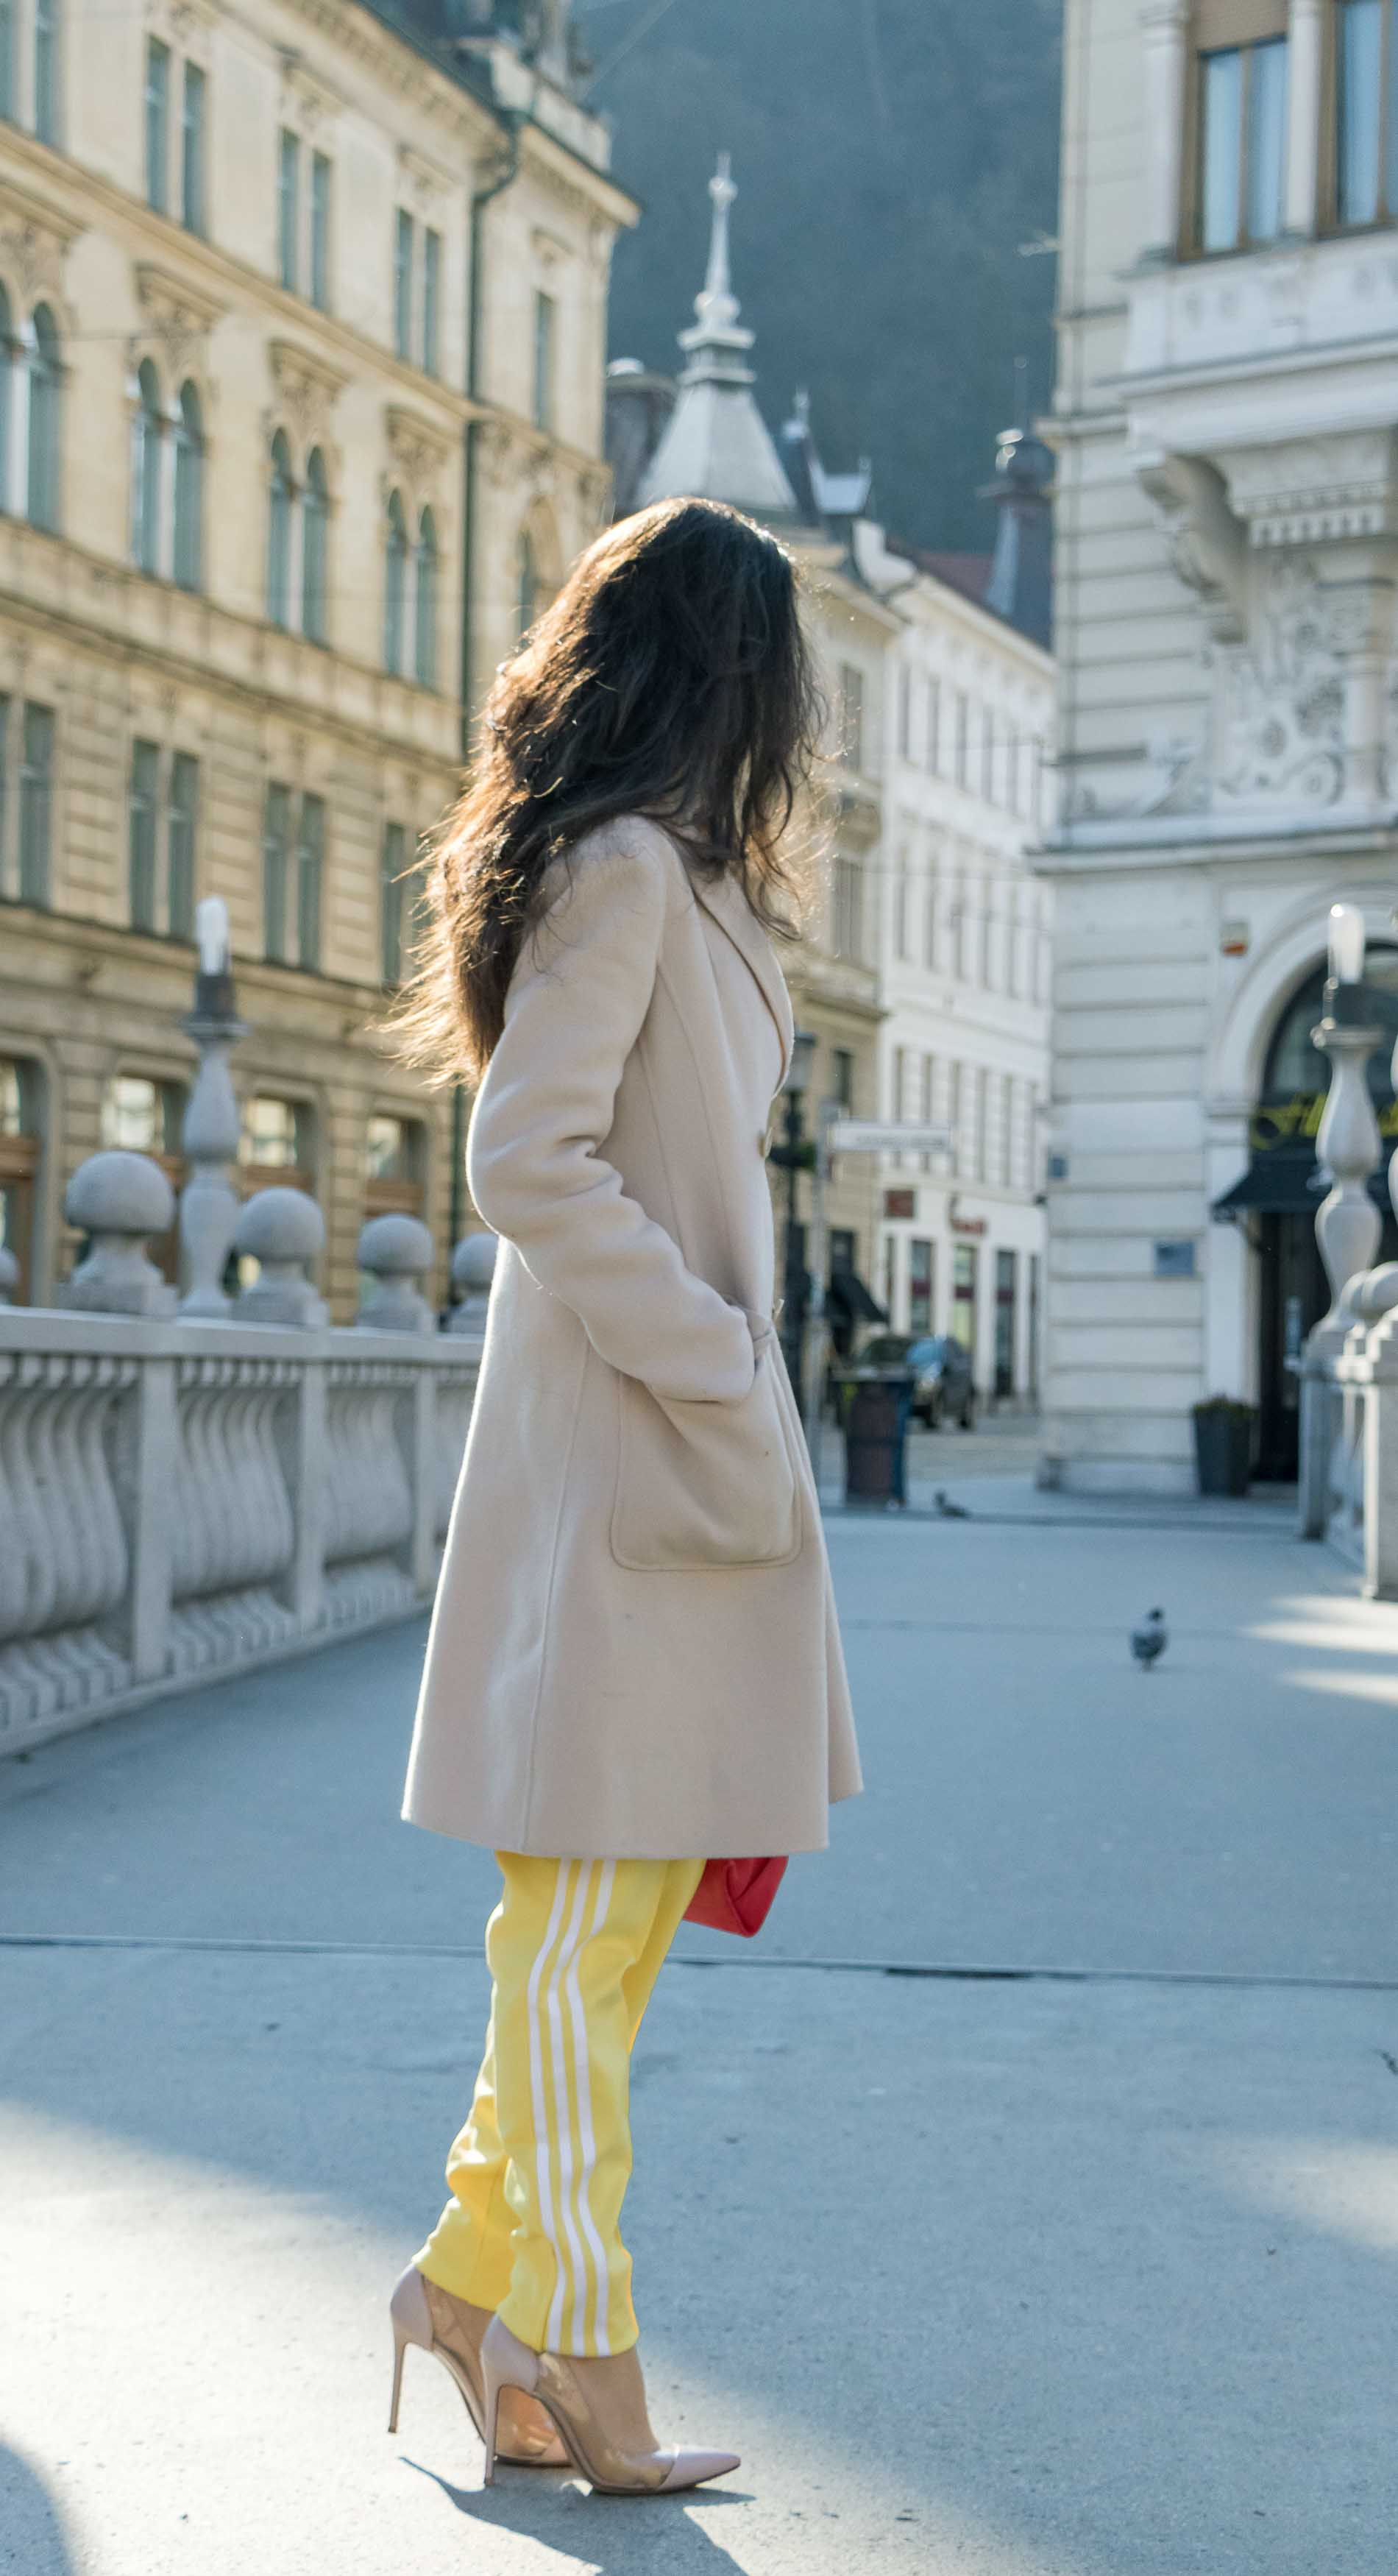 - Fashion Blogger Veronika Lipar of Brunette from Wall Street wearing yellow track pants with white stripes from Adidas, white turtleneck knit sweater, off-white pastel double breasted coat from Weekend Max Mara, blush powder transparent plexi shoes from Gianvito Rossi, pink top handle bag from See by Chloe while standing on the bridge in Ljubljana